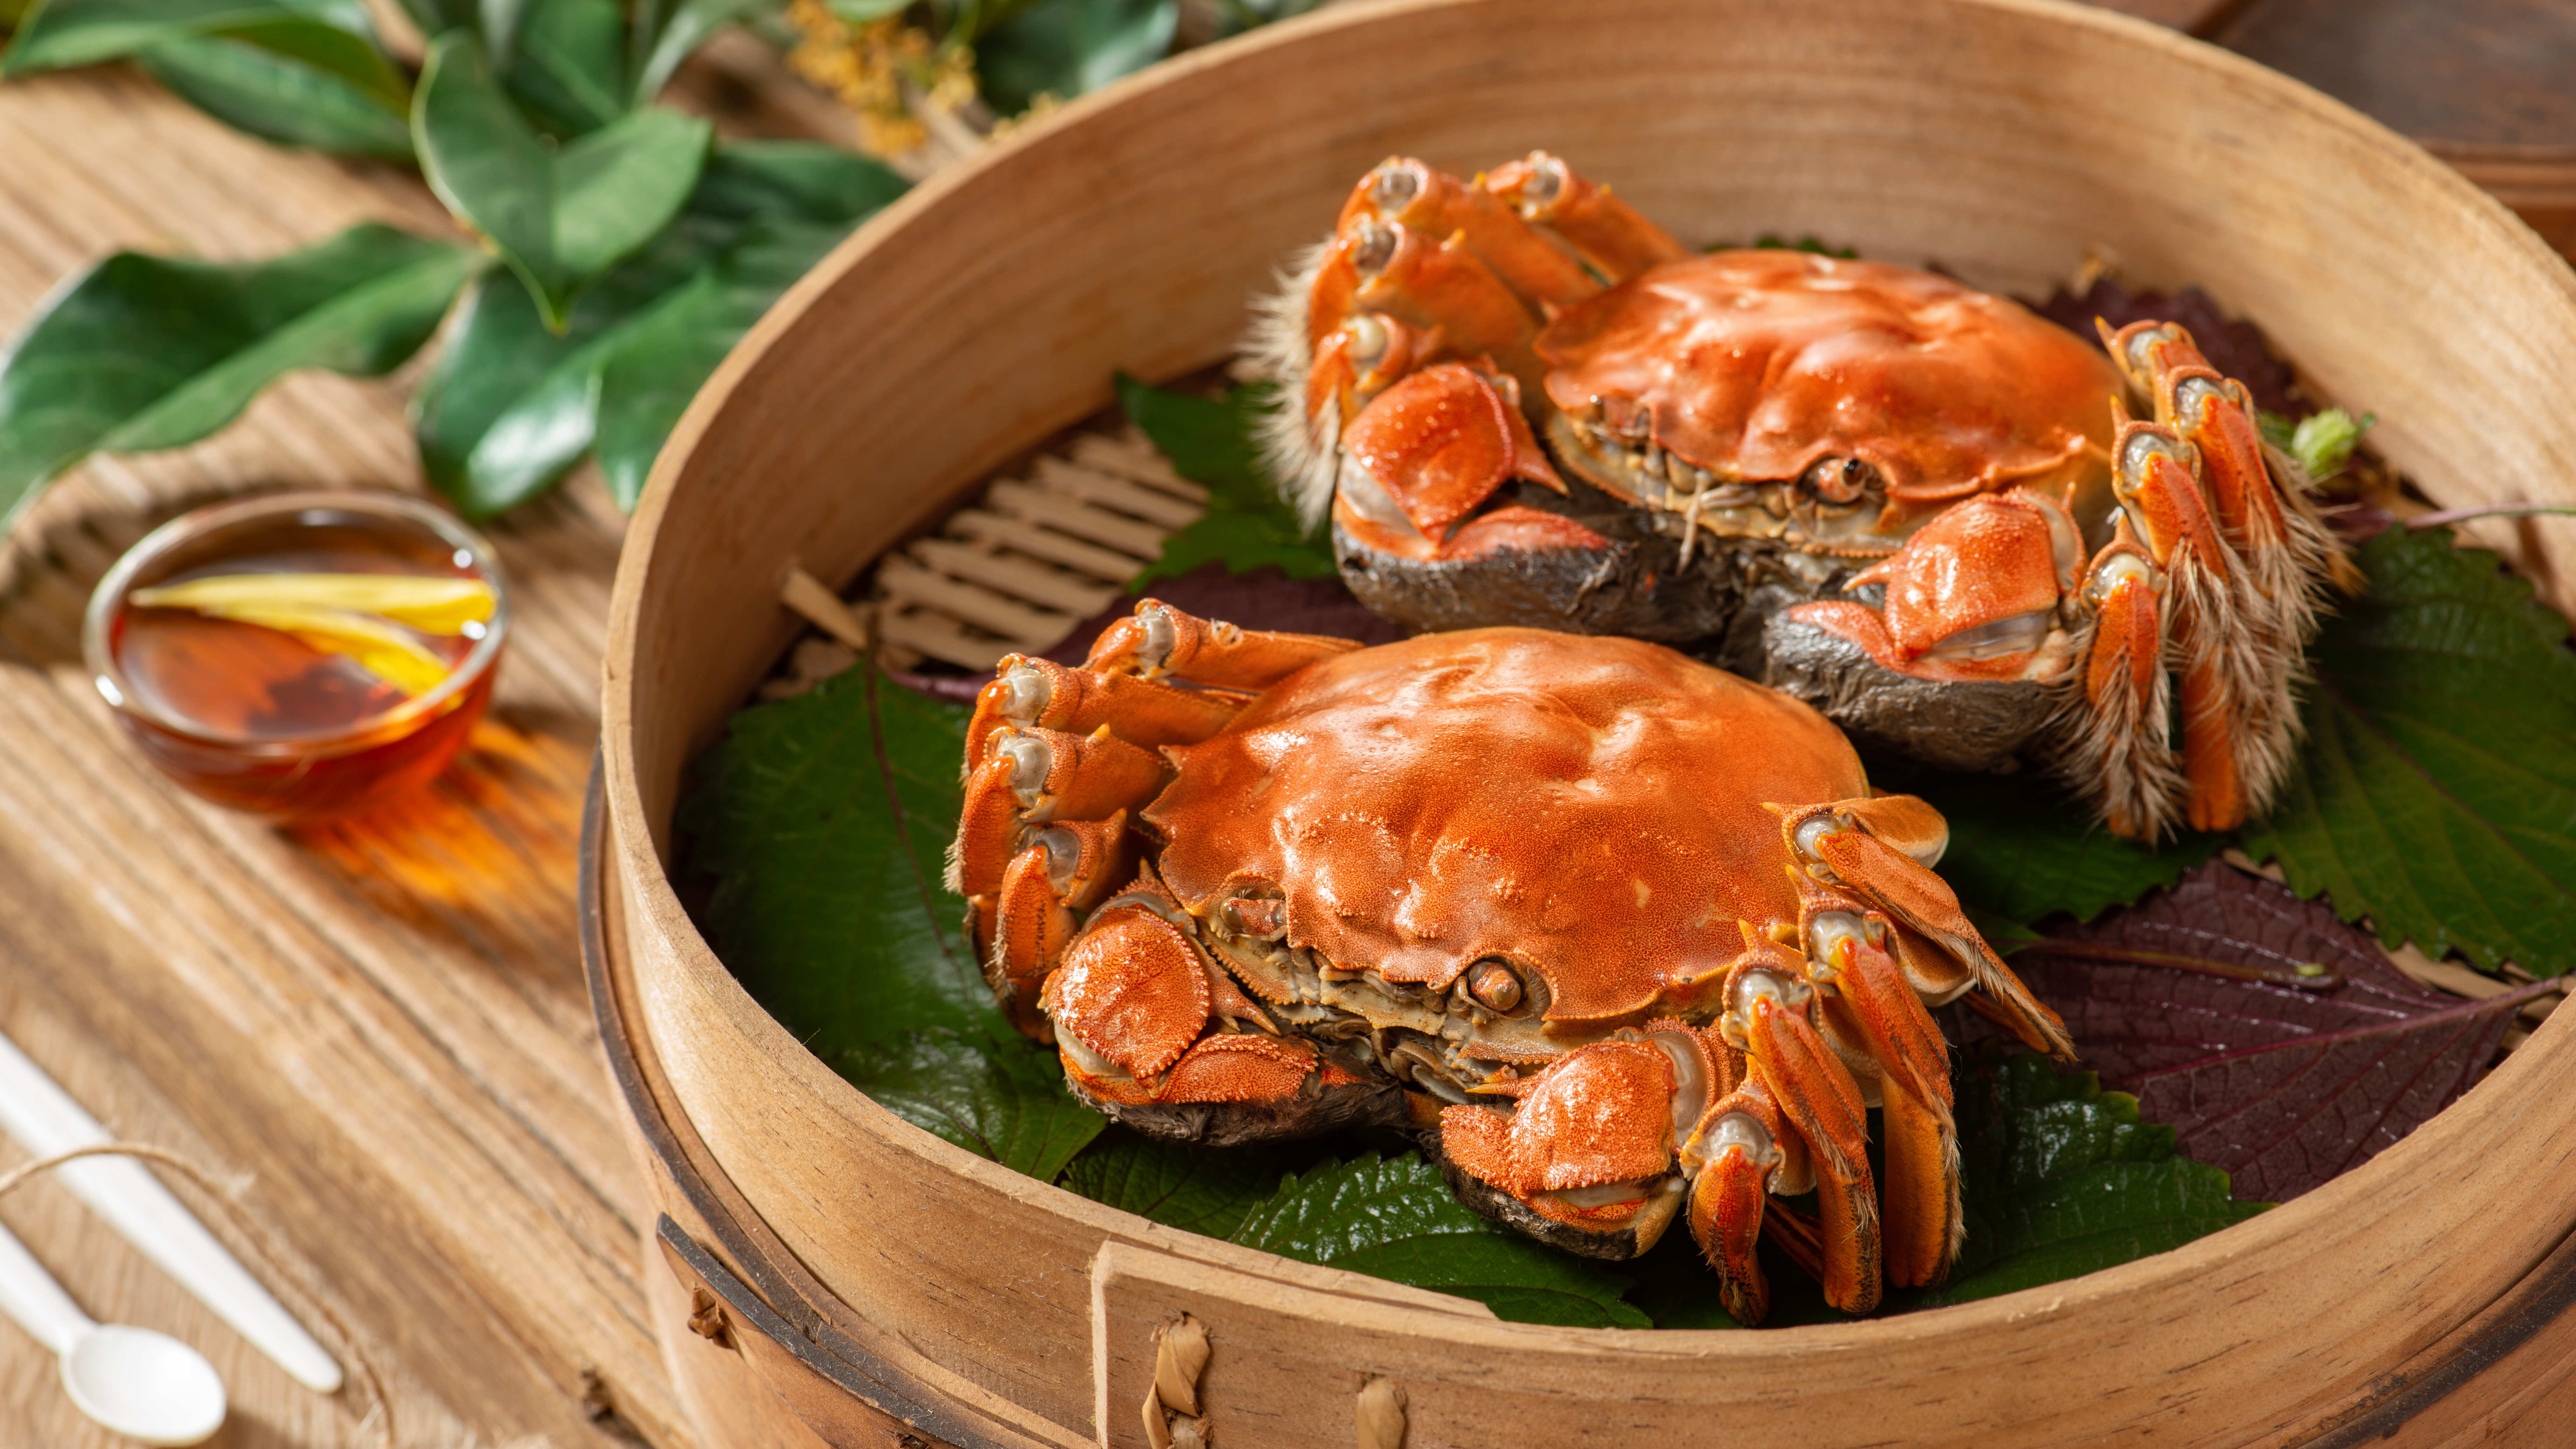 Hairy,Crab,For,Mid Autumn,Festival